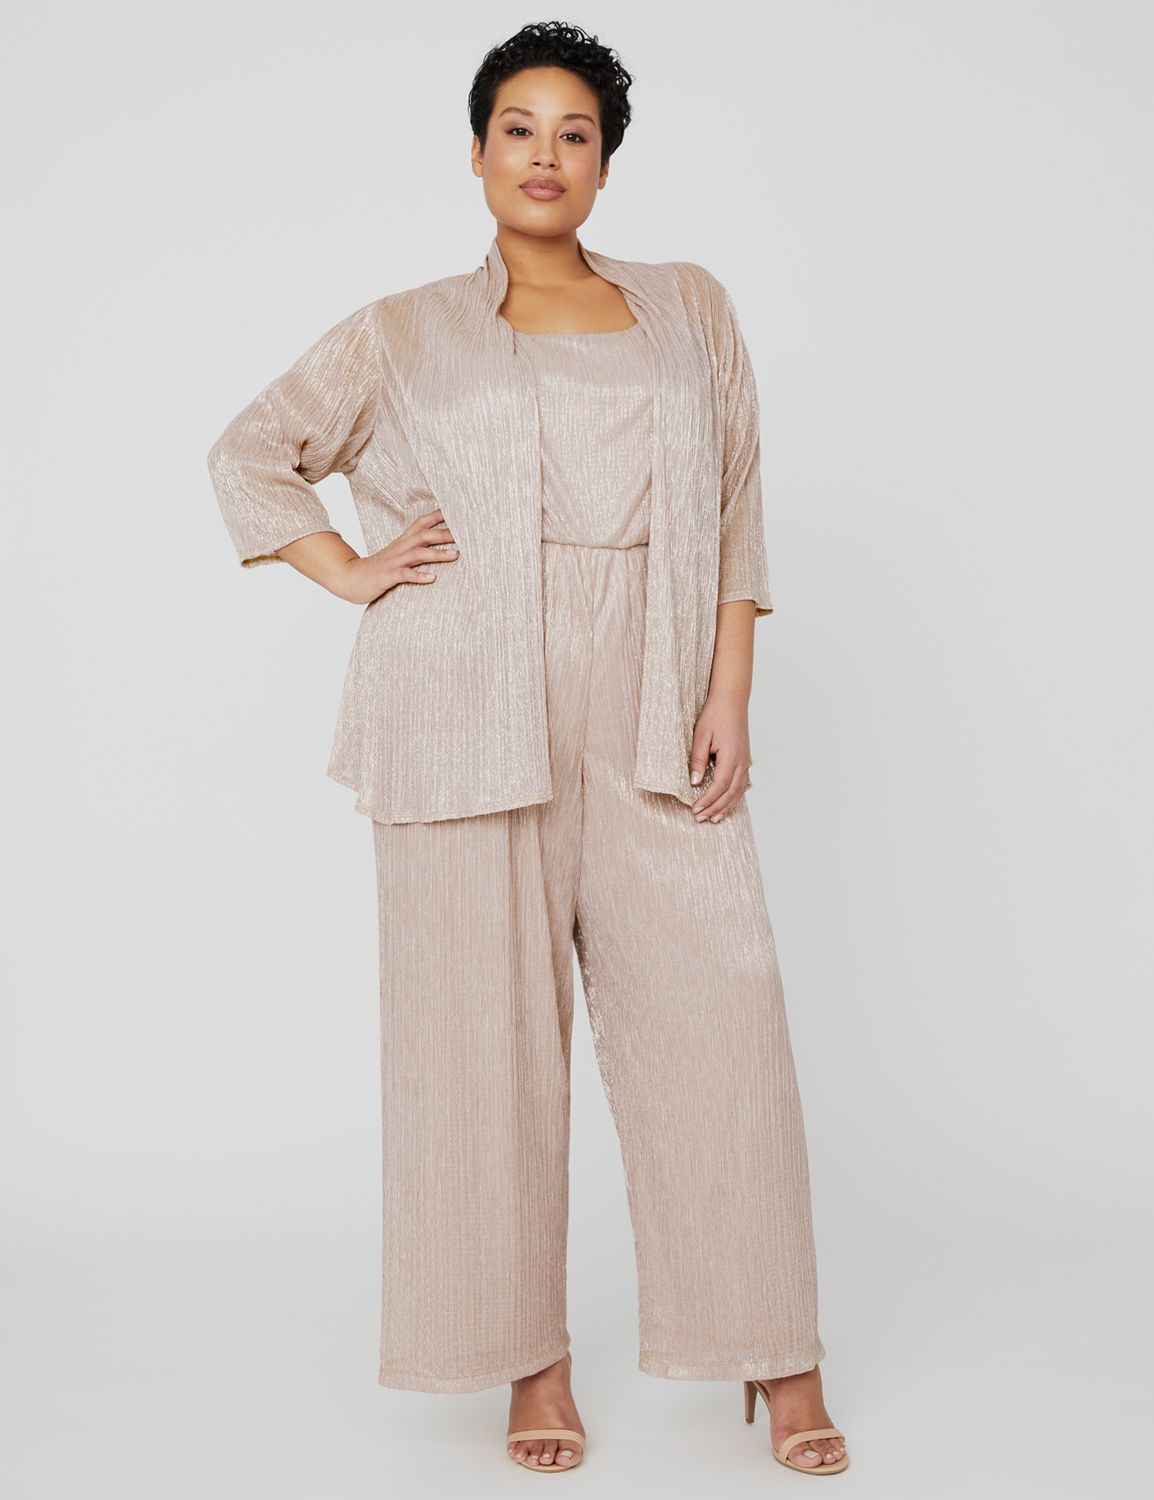 Shimmer Jumpsuit with Jacket 1090989 Jumpsuit with Jacket (94982 MP-300099363